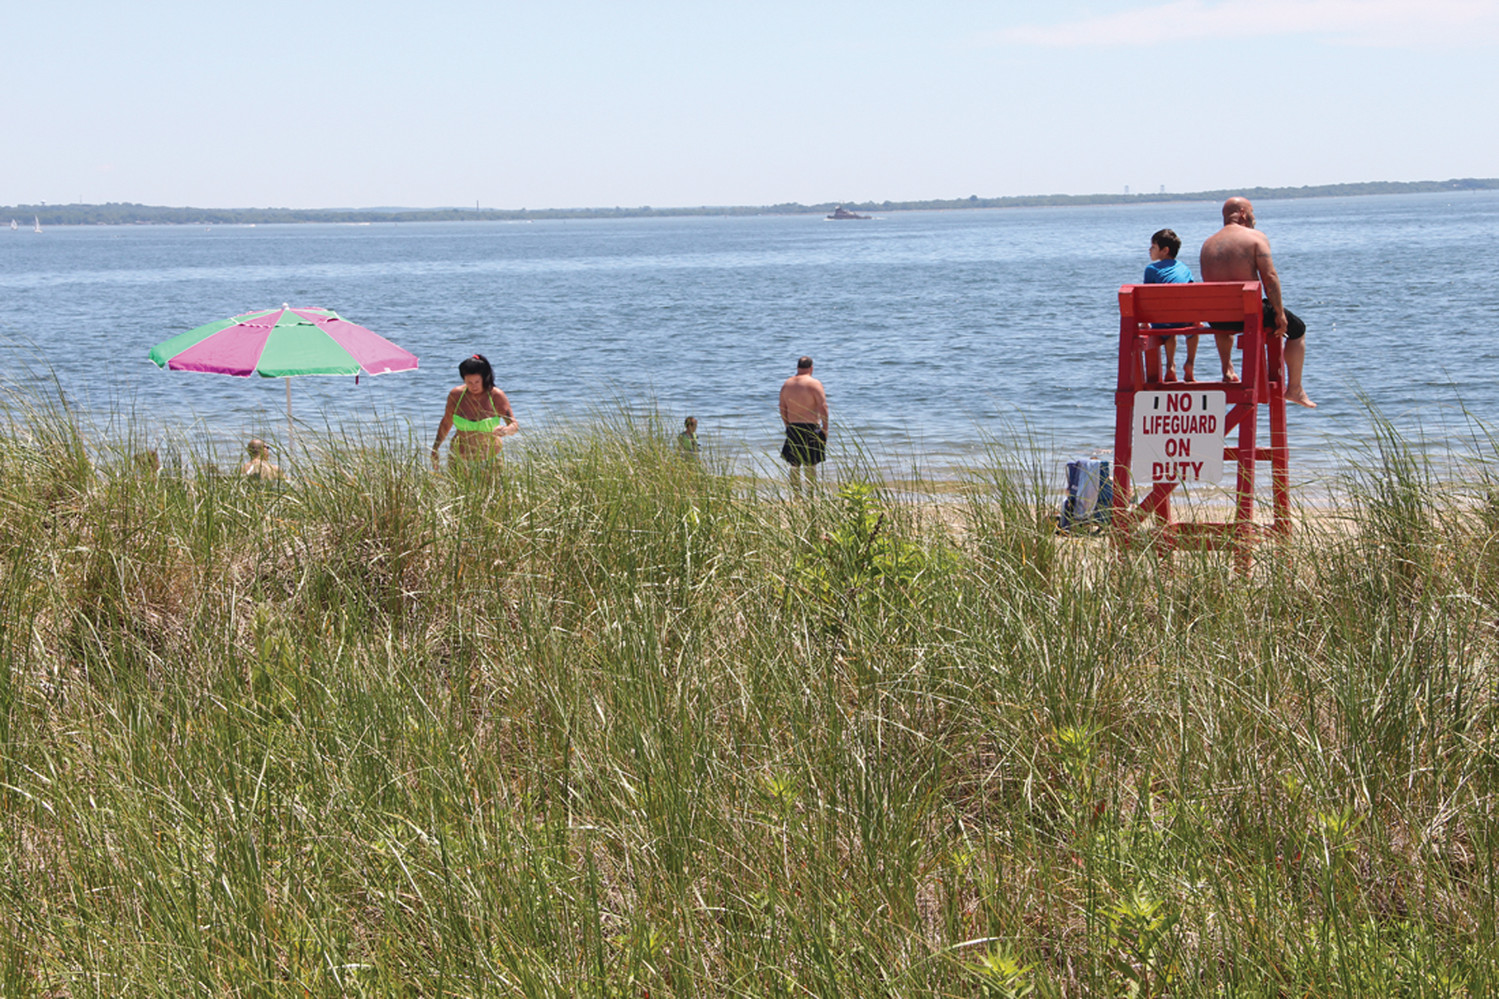 East Matunuck and Scarborough state beaches will reopen on a limited basis on Memorial Day, Gov. Raimondo has announced.